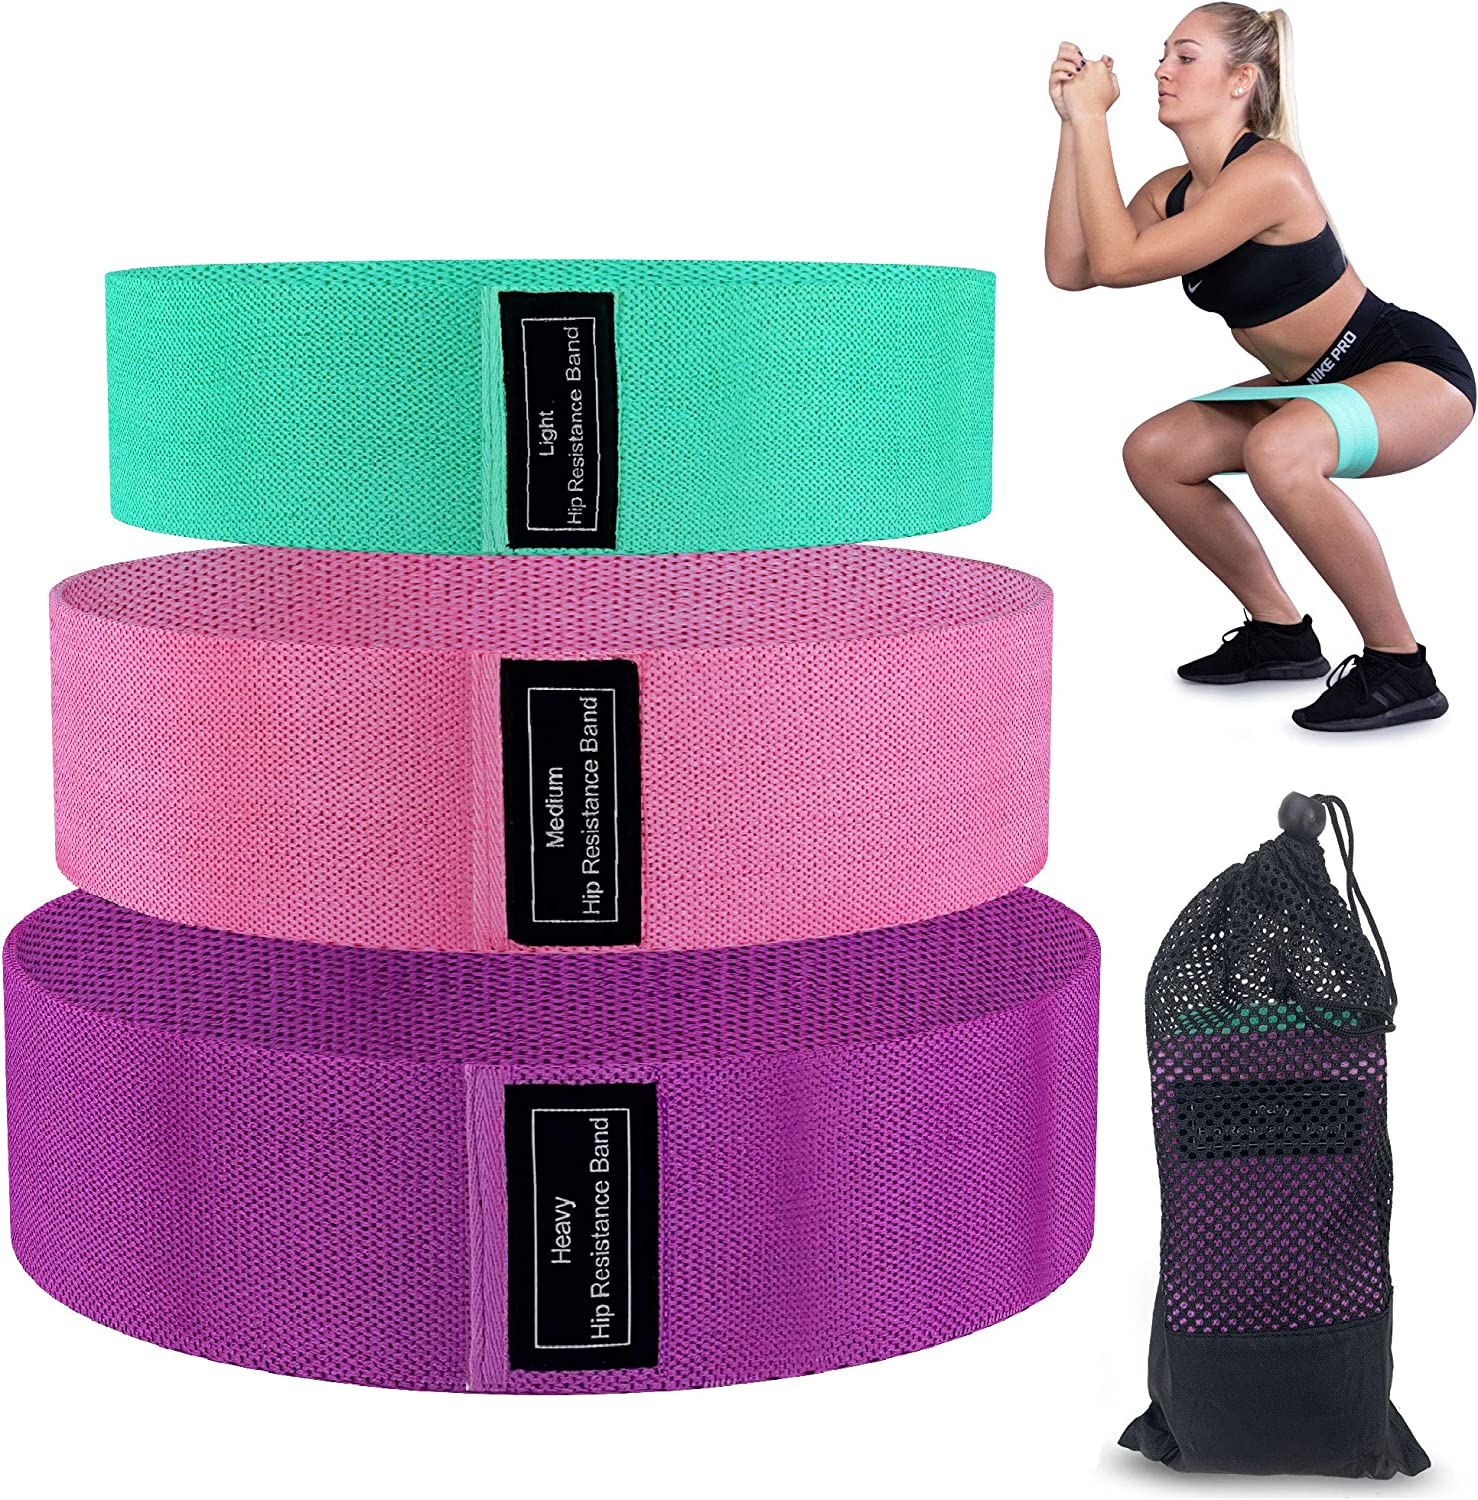 Fun Buns Fabric Workout Resistance Bands Set, 3 Pack, X-Light, Light, and Medium Progressive Fitness Training, Workout Equipment for Legs, Butt and Core, Drawstring Travel Bag